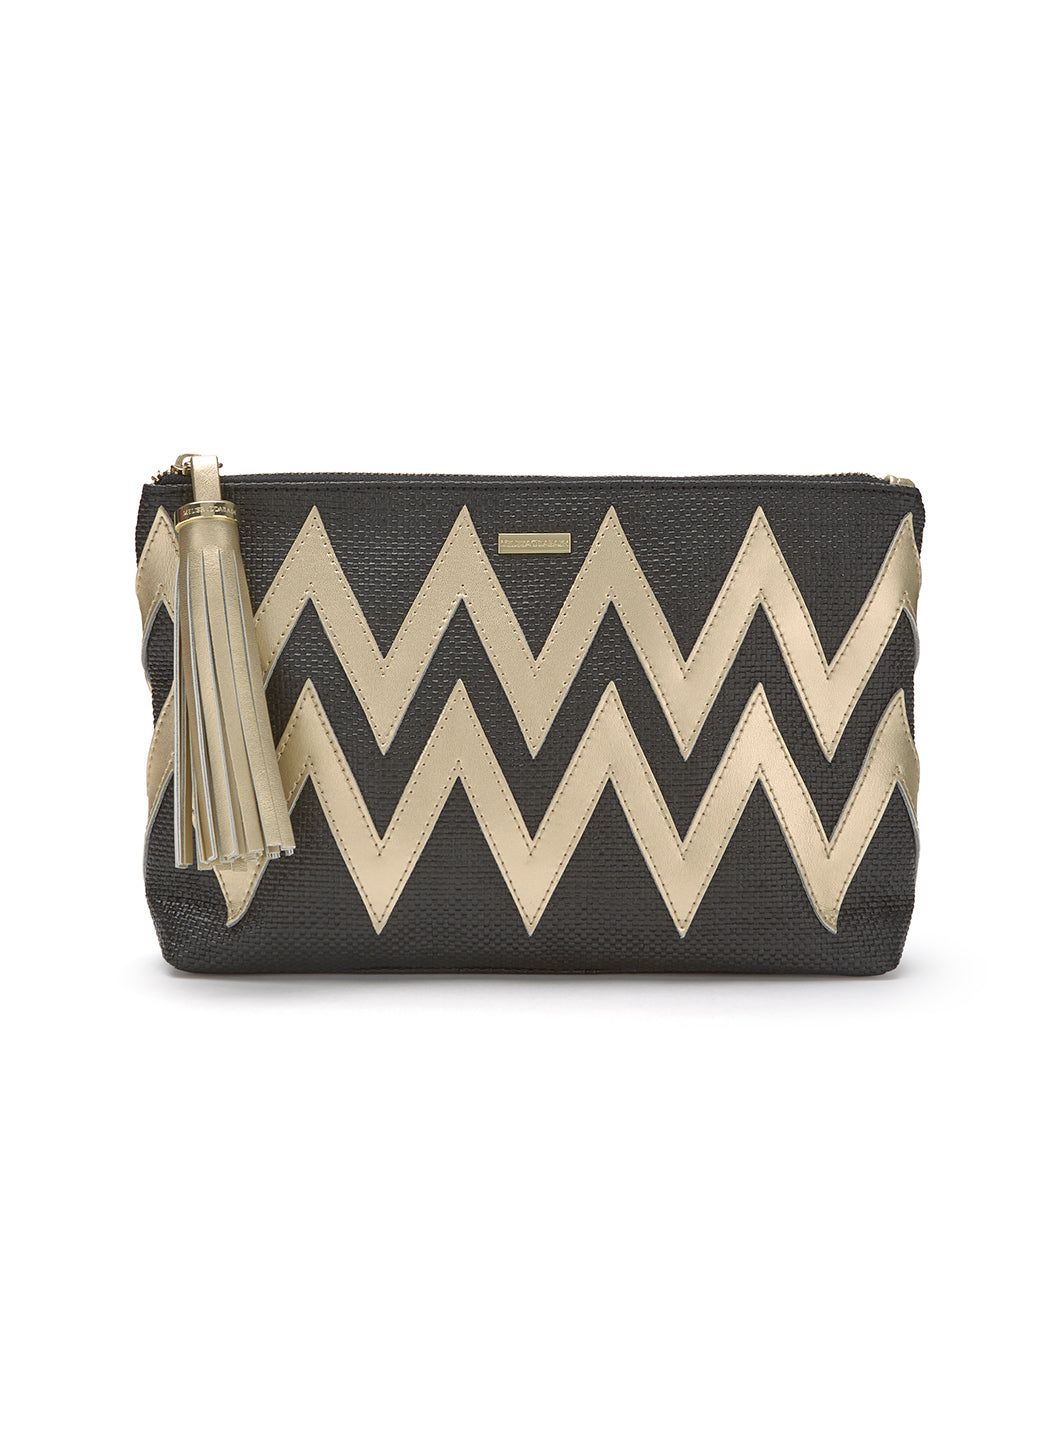 Crete Zigzag Clutch Black/Gold